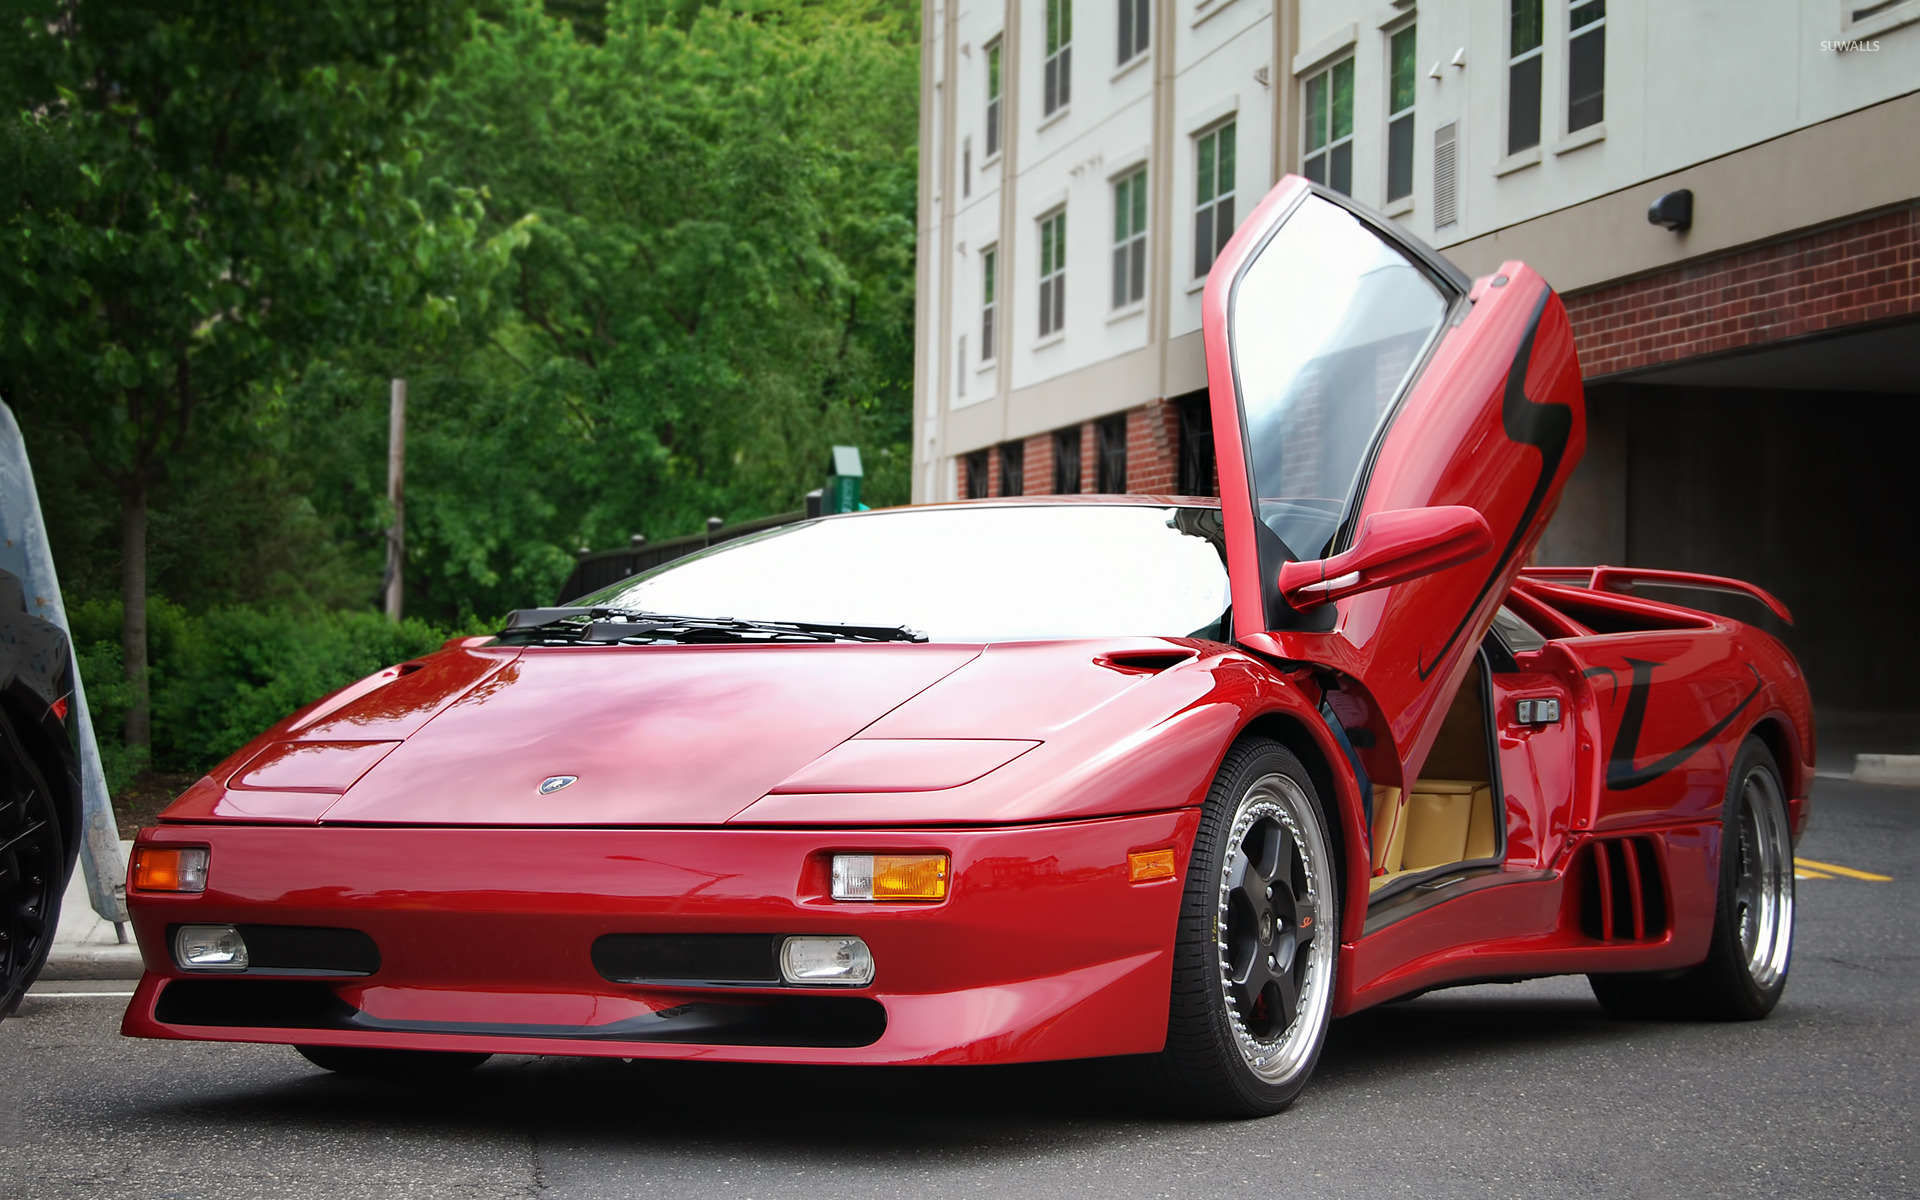 red lamborghini diablo with an open door front side view wallpaper 1920x1200 jpg